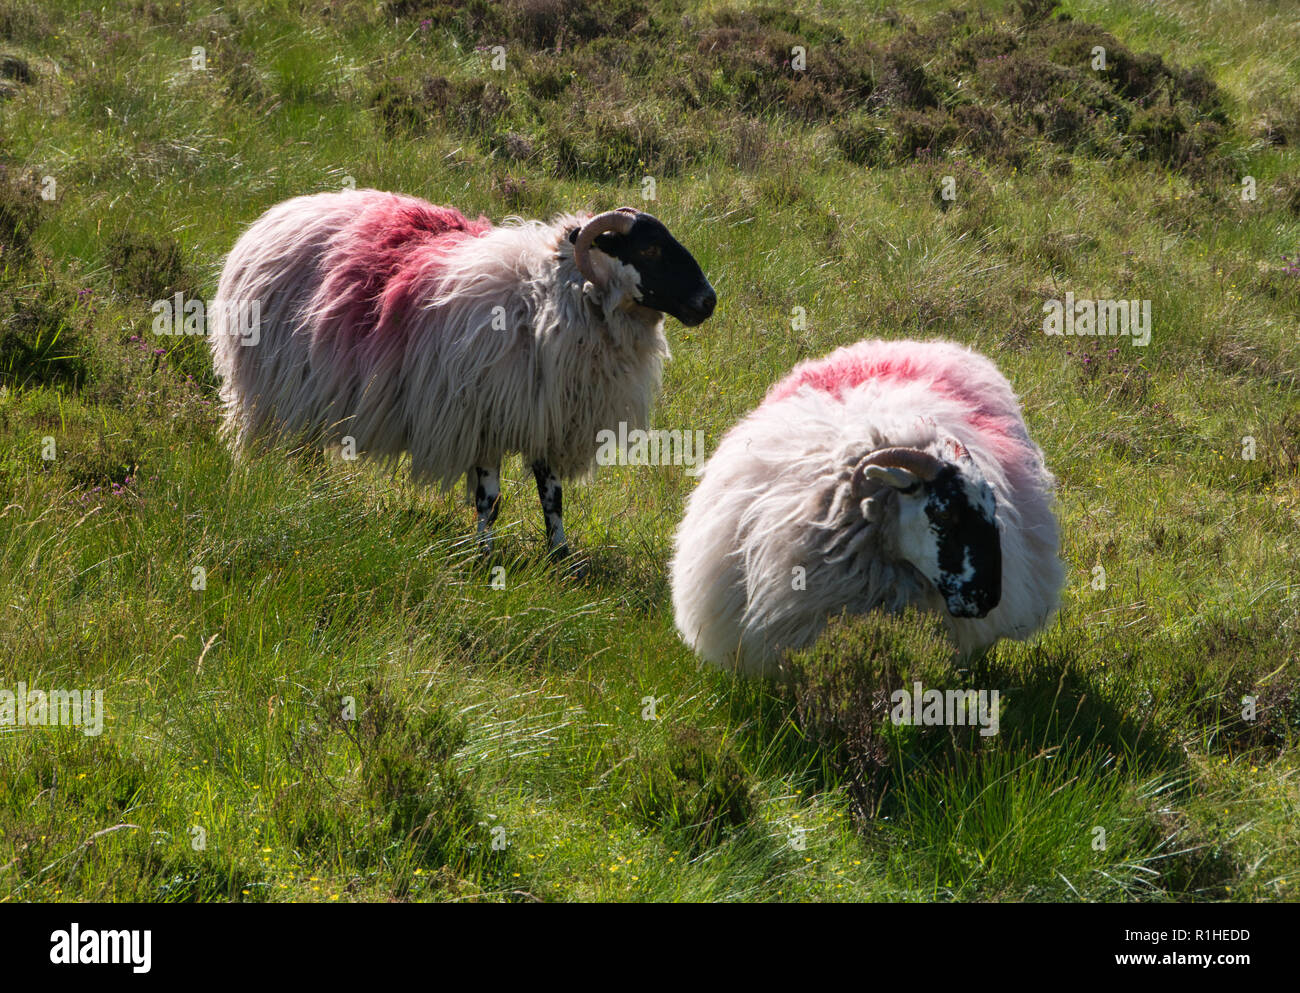 Two sheep with thick fur on a meadow with high grass in Ireland - Stock Image